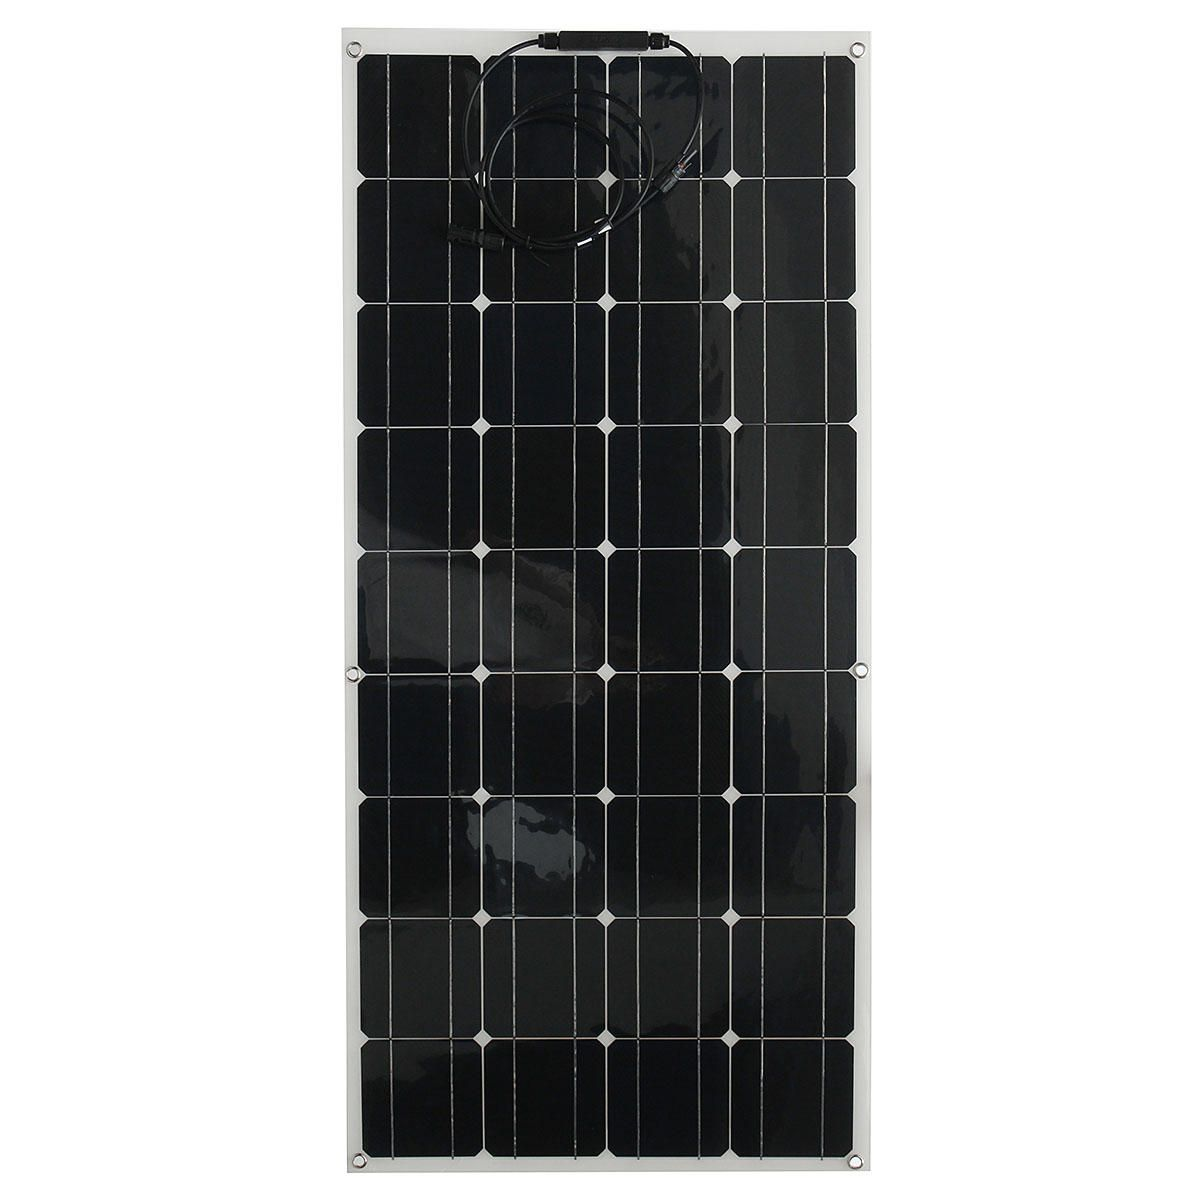 Elfeland El 11 130w 18v Semi Flexible Solar Panel With Cable For Home Rv Boat Electrical Equipment Supplies From Industrial Scientific On Banggood Com Flexible Solar Panels Solar Panels Buy Solar